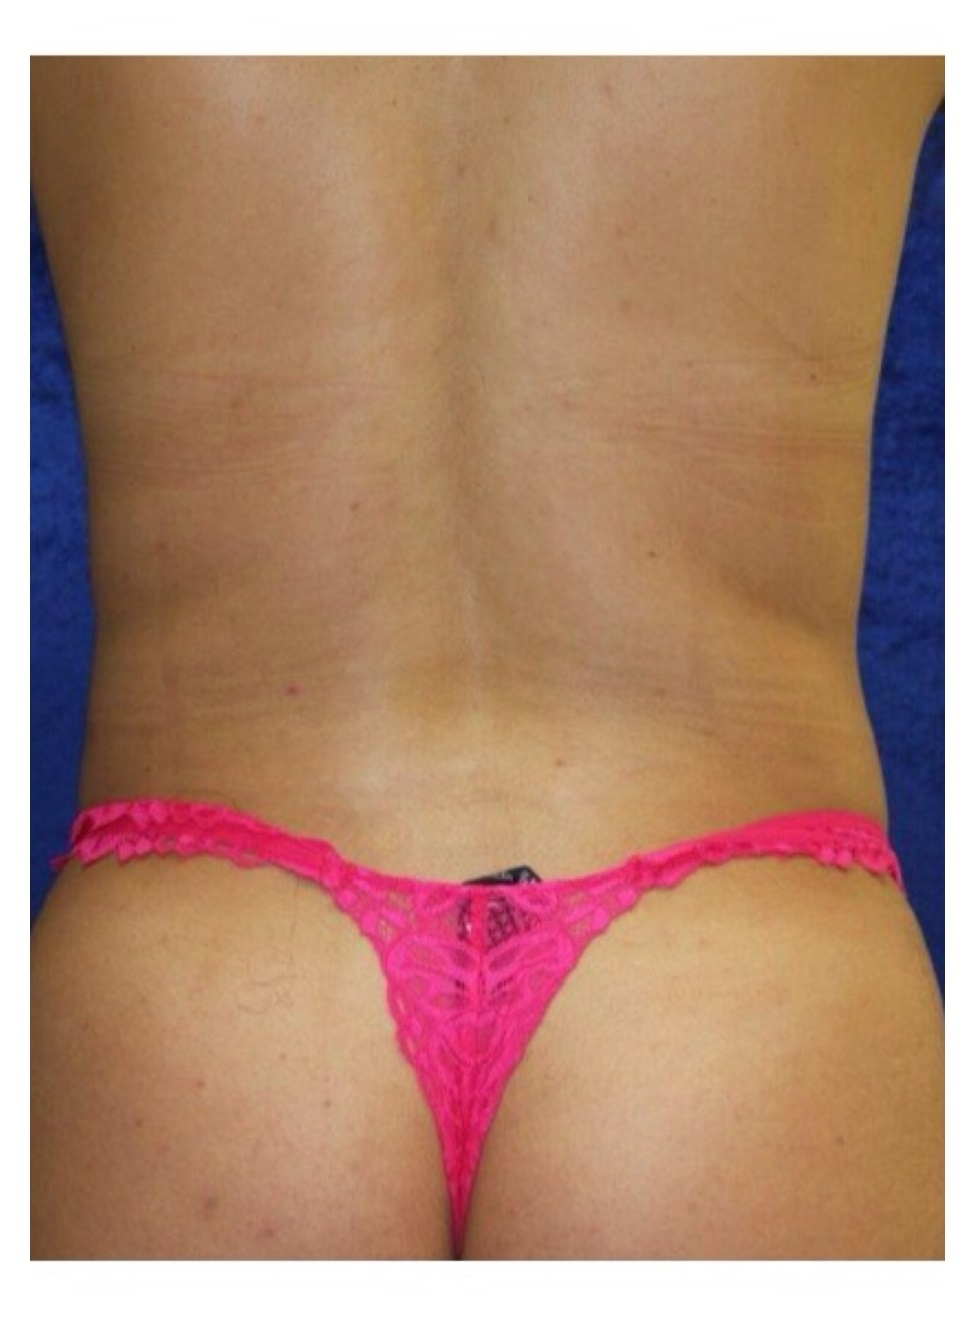 Body Procedures - Liposuction - Case #2188 After